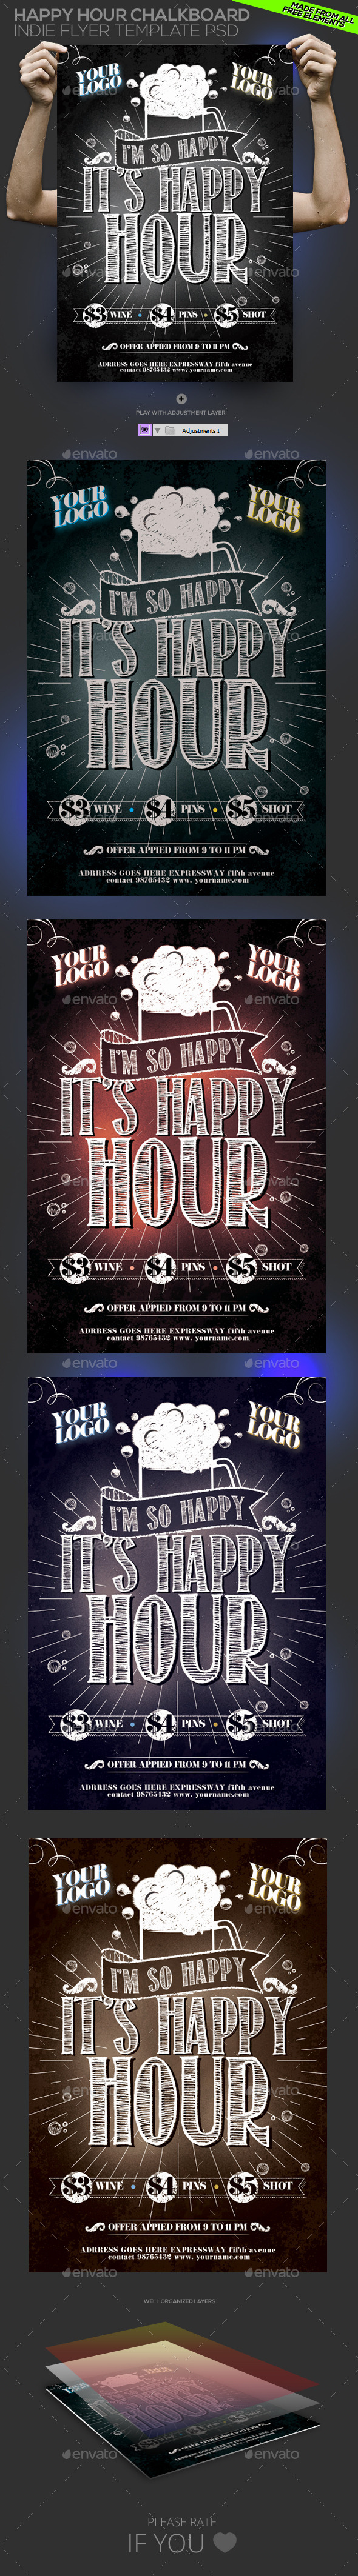 GraphicRiver Happy Hour Chalkboard Indie Template PSD 10873203